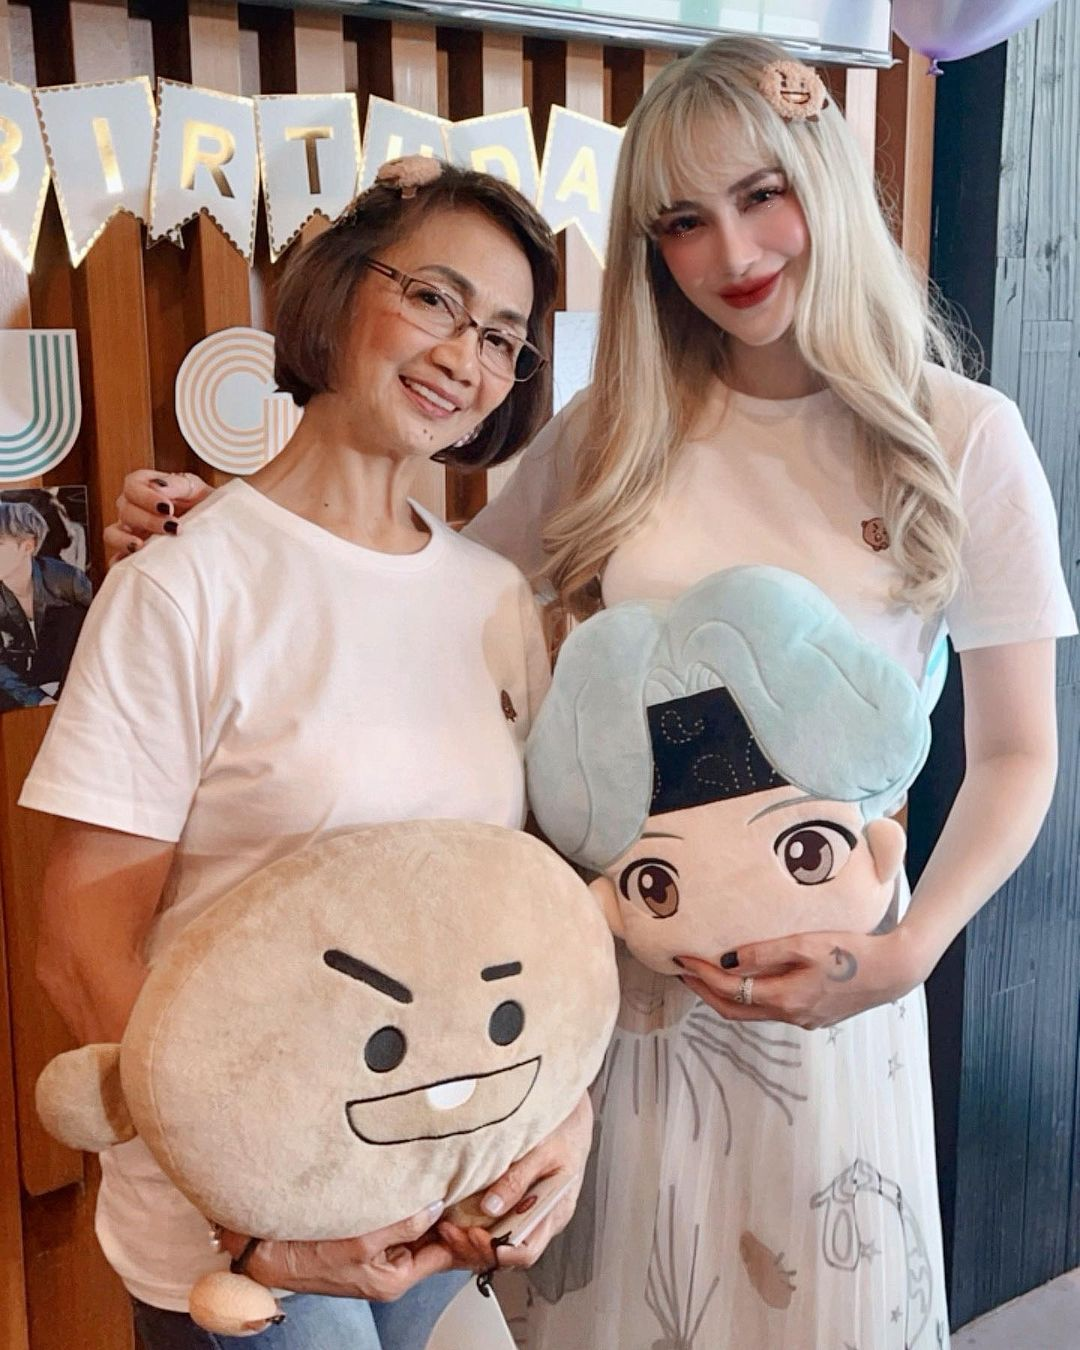 Arci Munoz with her mom and showing off her new hair color